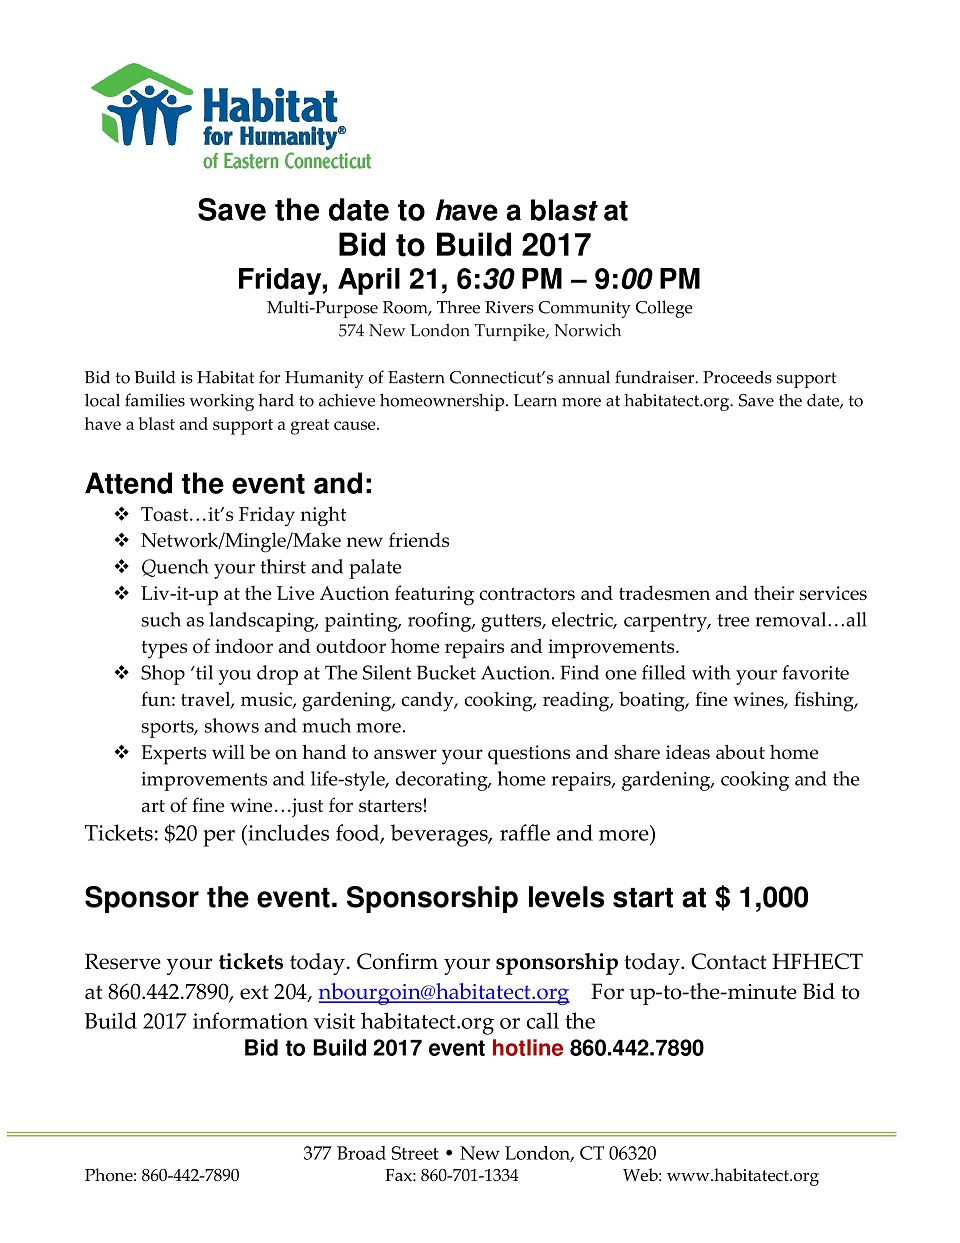 SAVE THE DATE - Bid to Build 2017